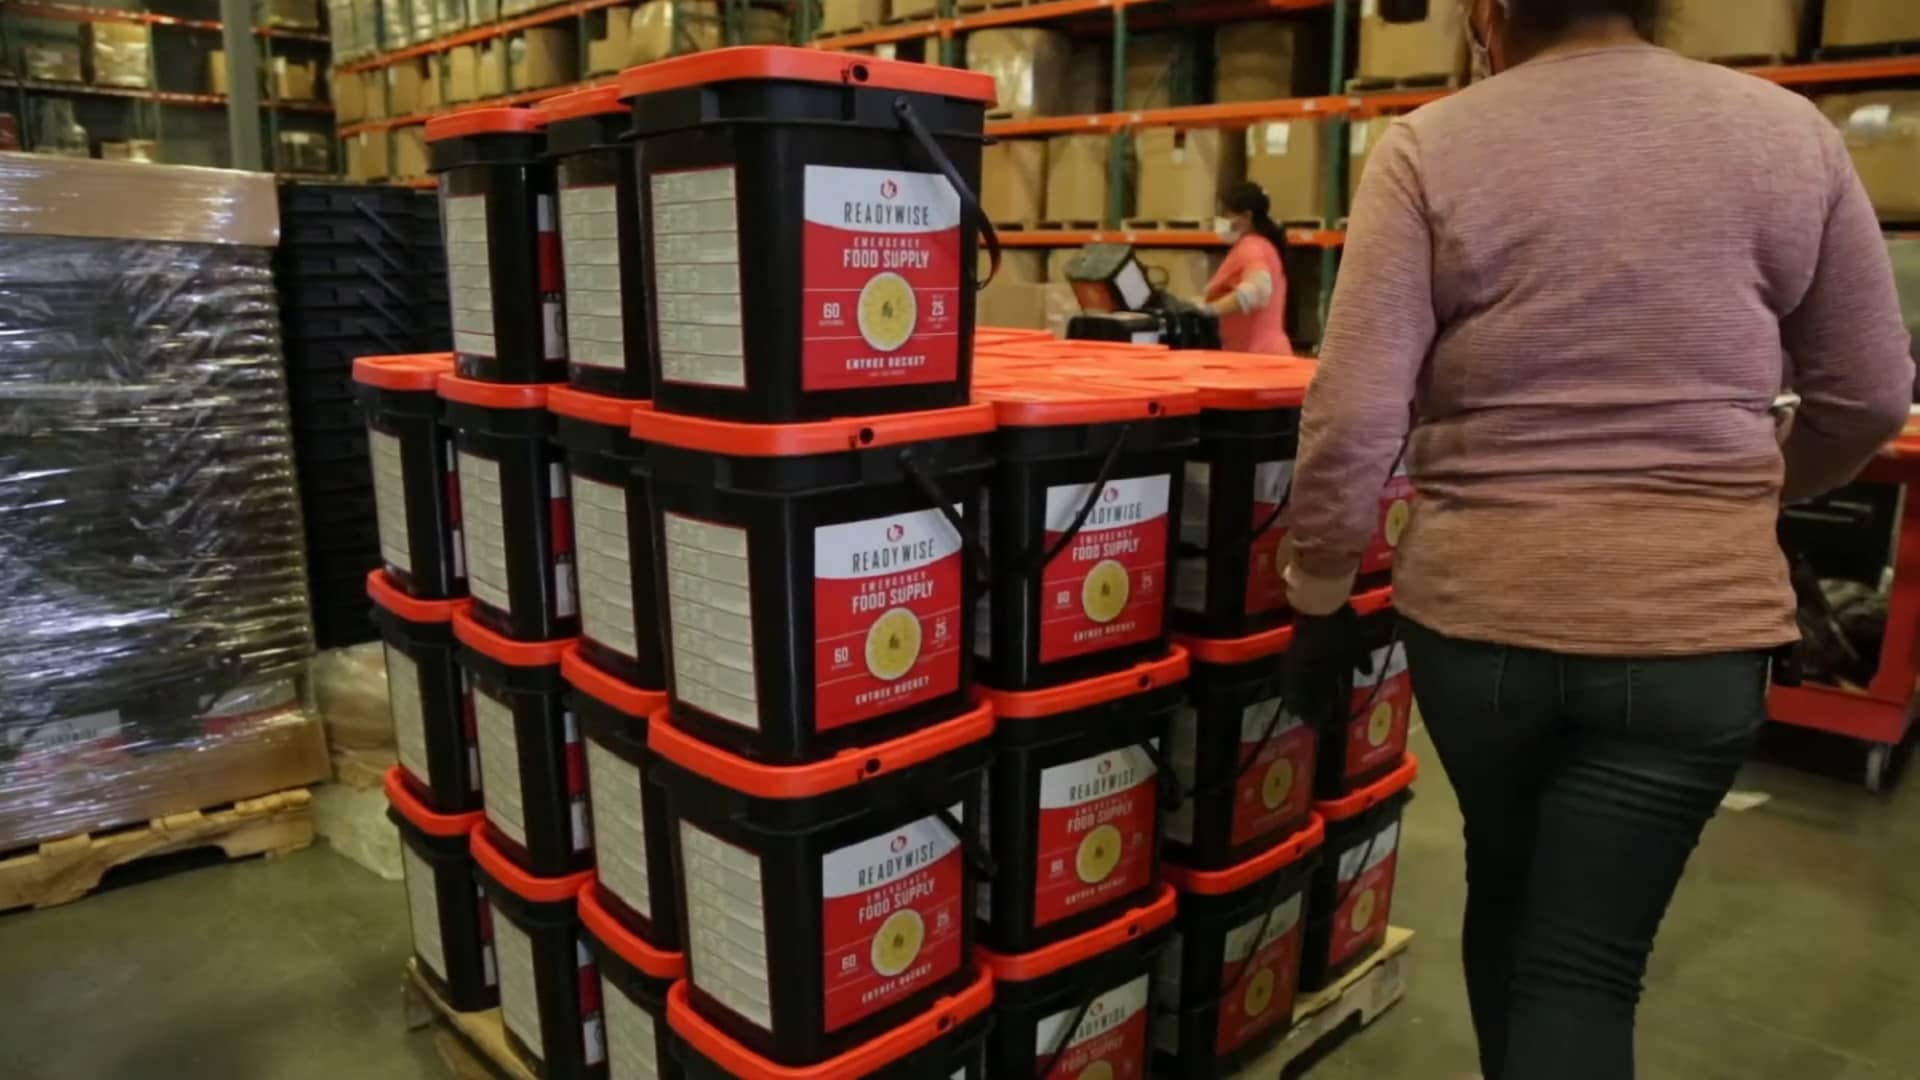 A pallet of ReadyWise emergency food supply buckets, each containing 60 servings of food with a 25-year shelf life.